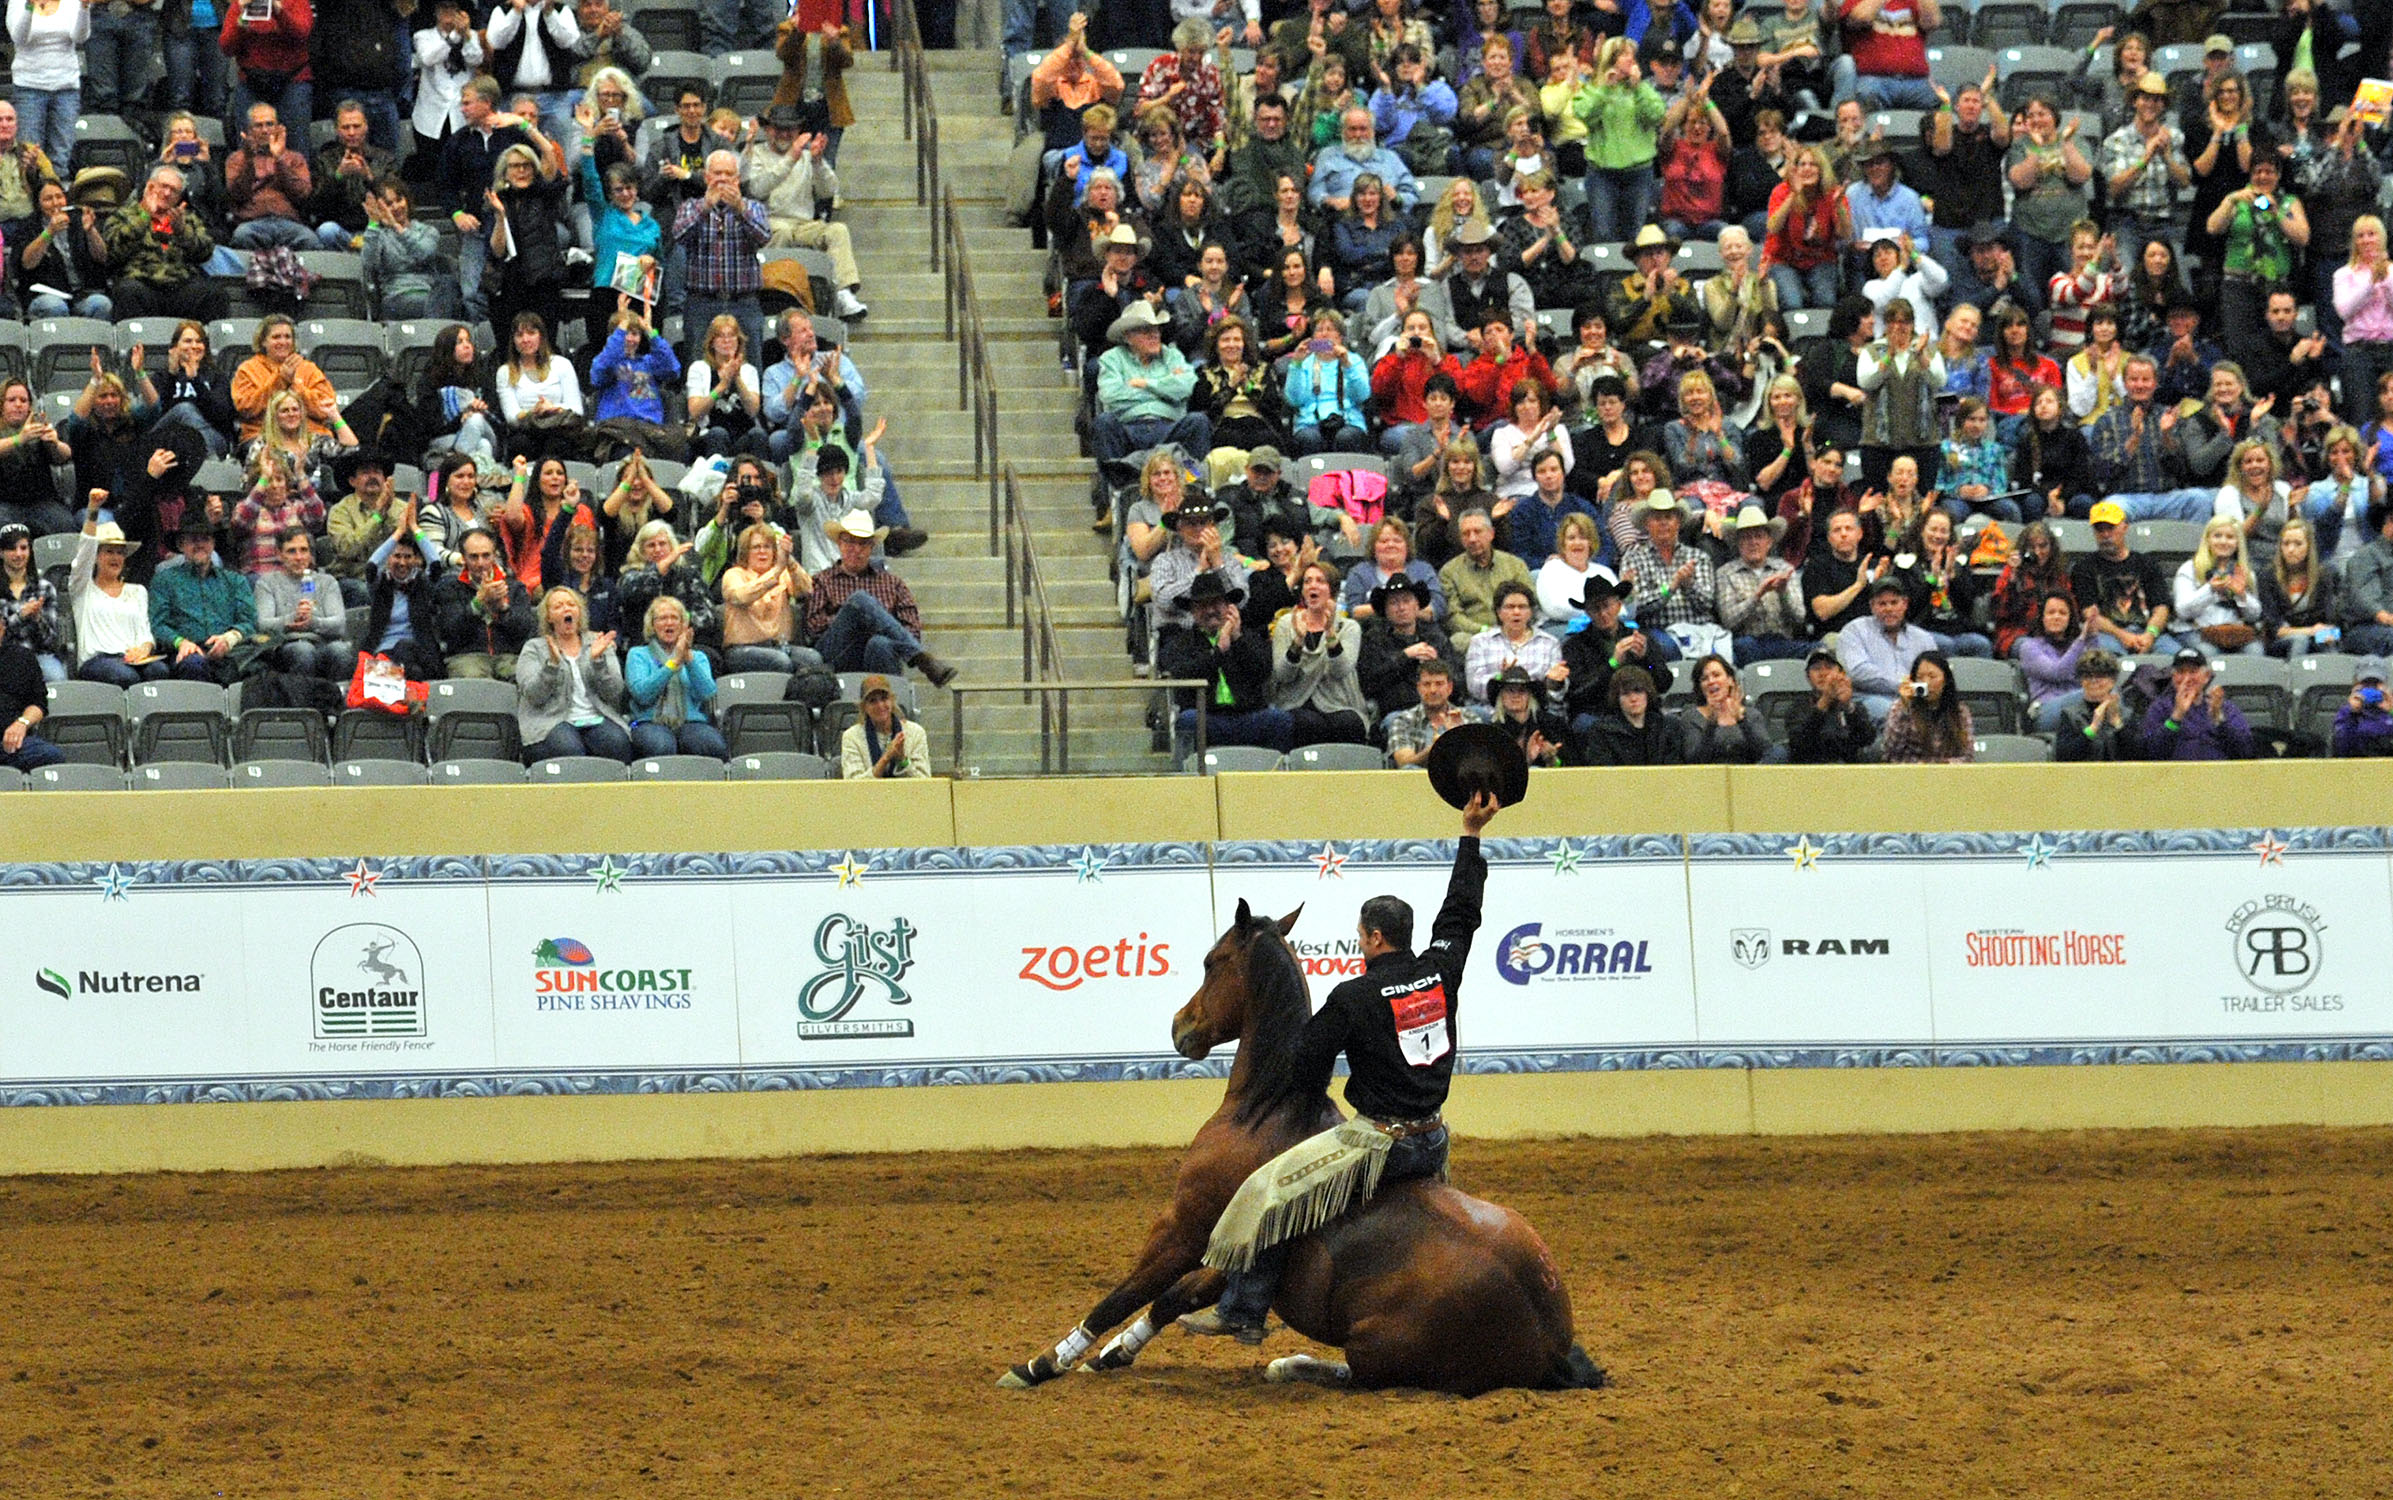 Wild Card Competitor Stuns the Crowd Winning 2014 Road To The Horse Competition